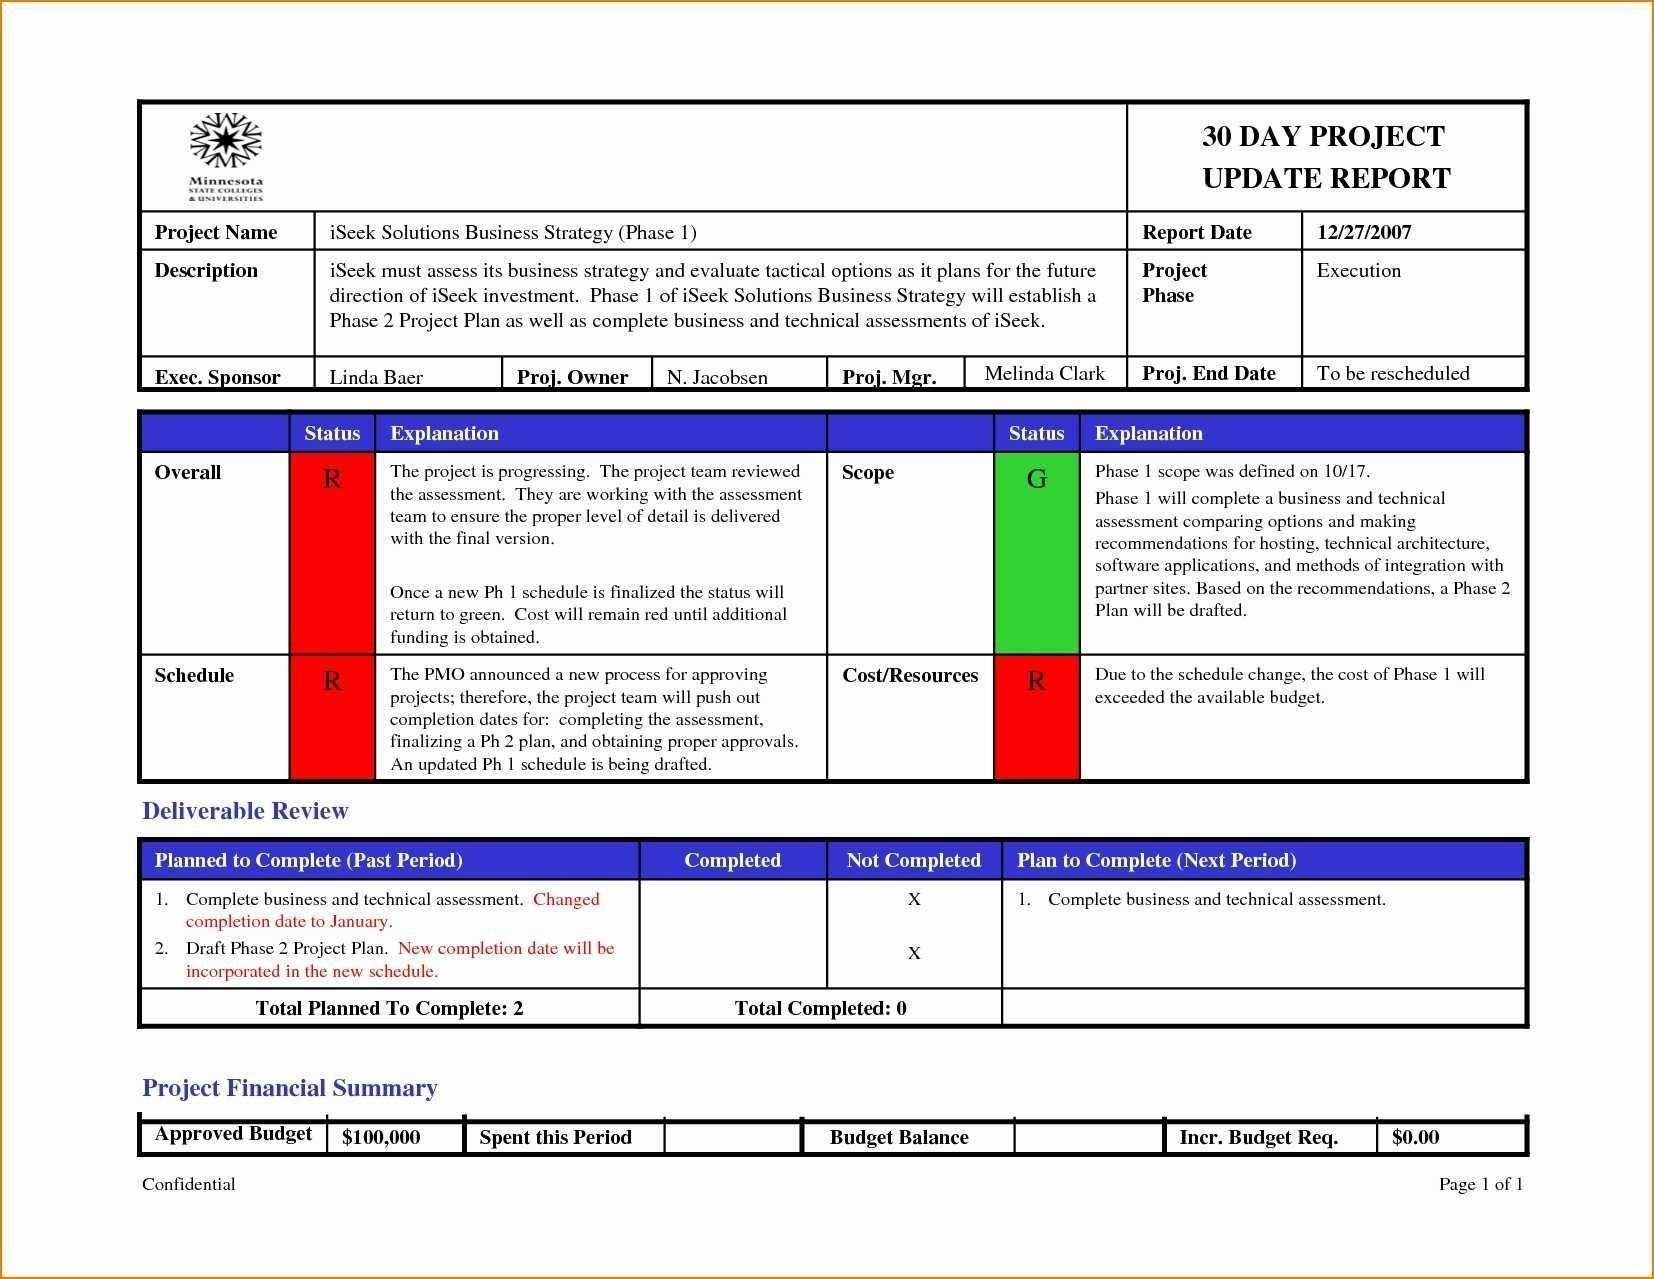 003 Excellent Project Management Weekly Statu Report Template Ppt High Resolution  Template+powerpointFull